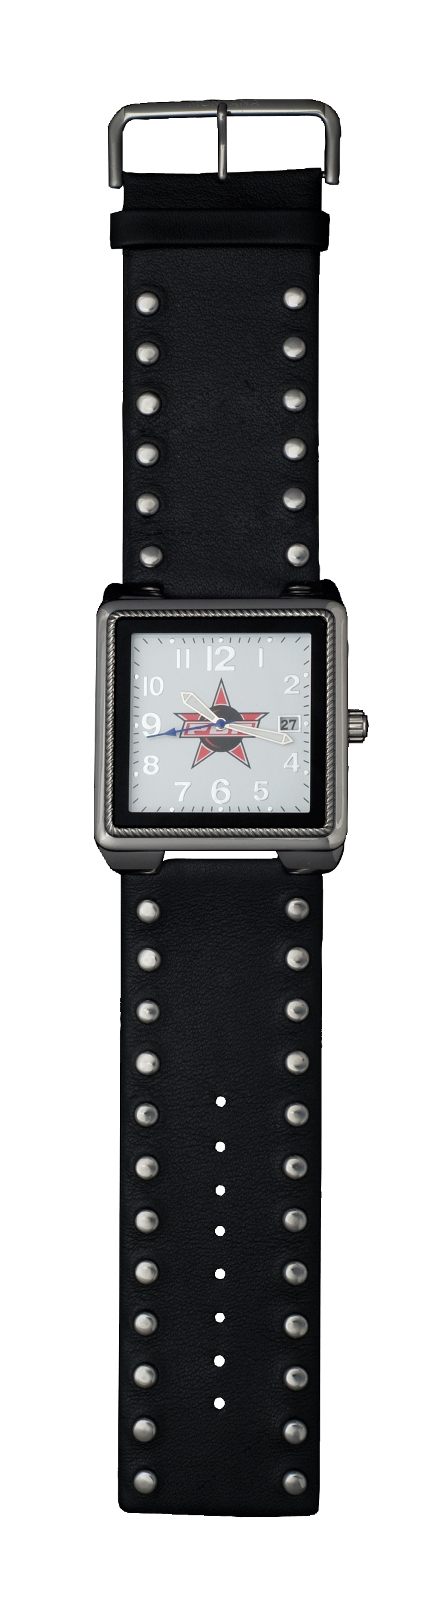 Montana Silversmiths PBR Square Face and Studded Leather Watch